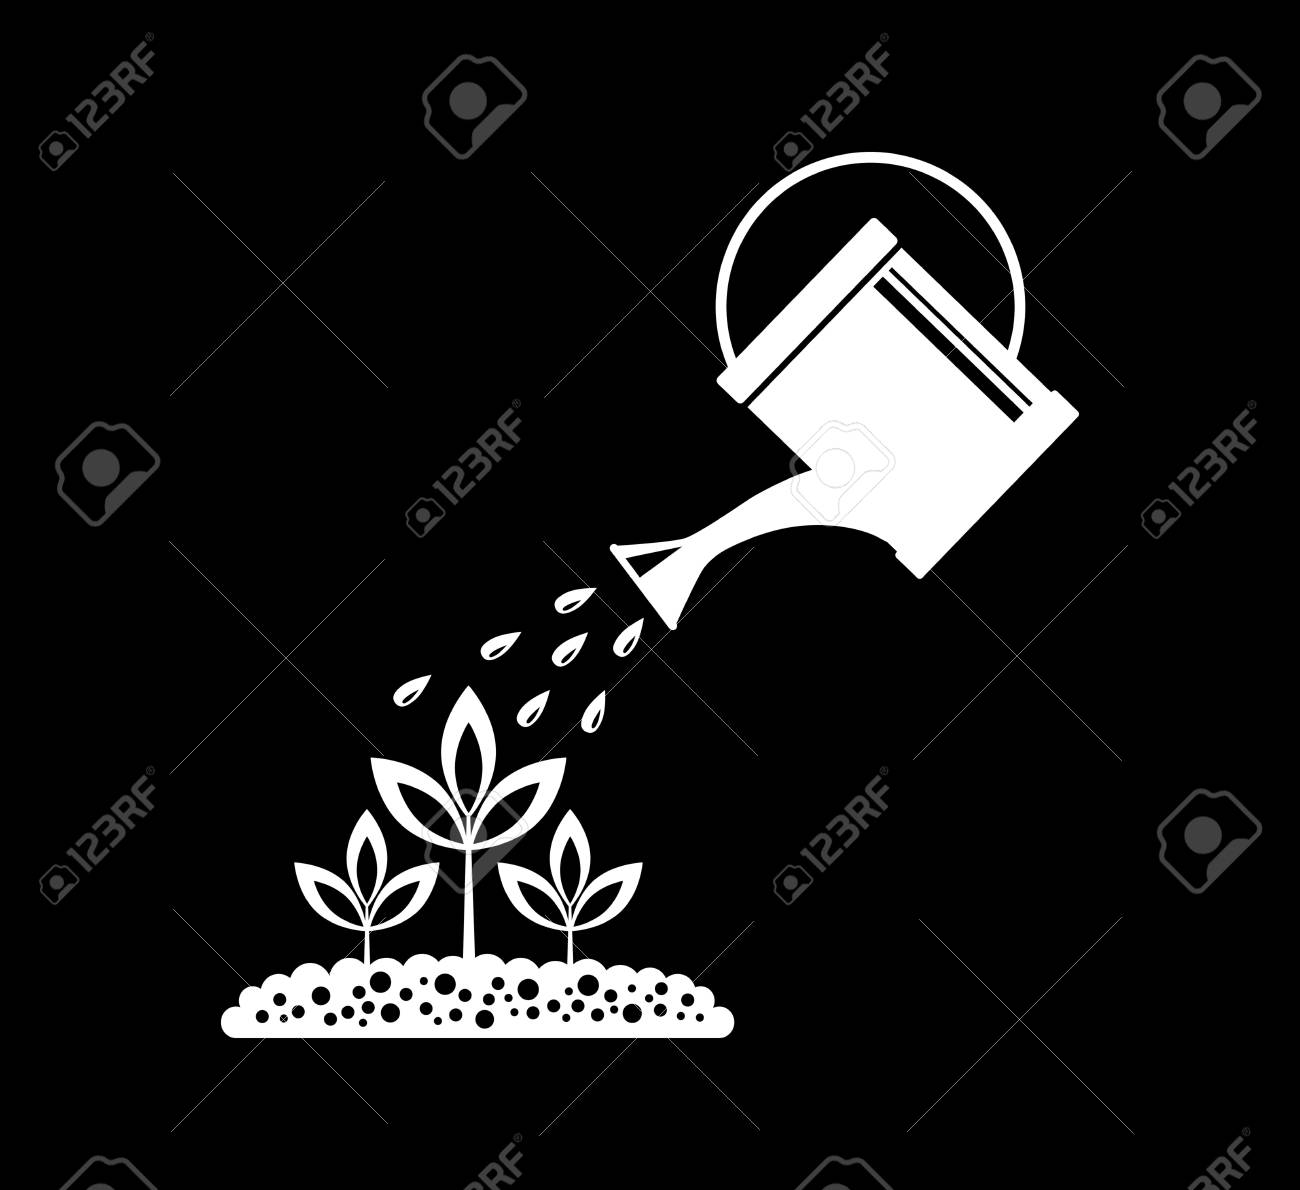 Watering can Stock Vector - 17536844